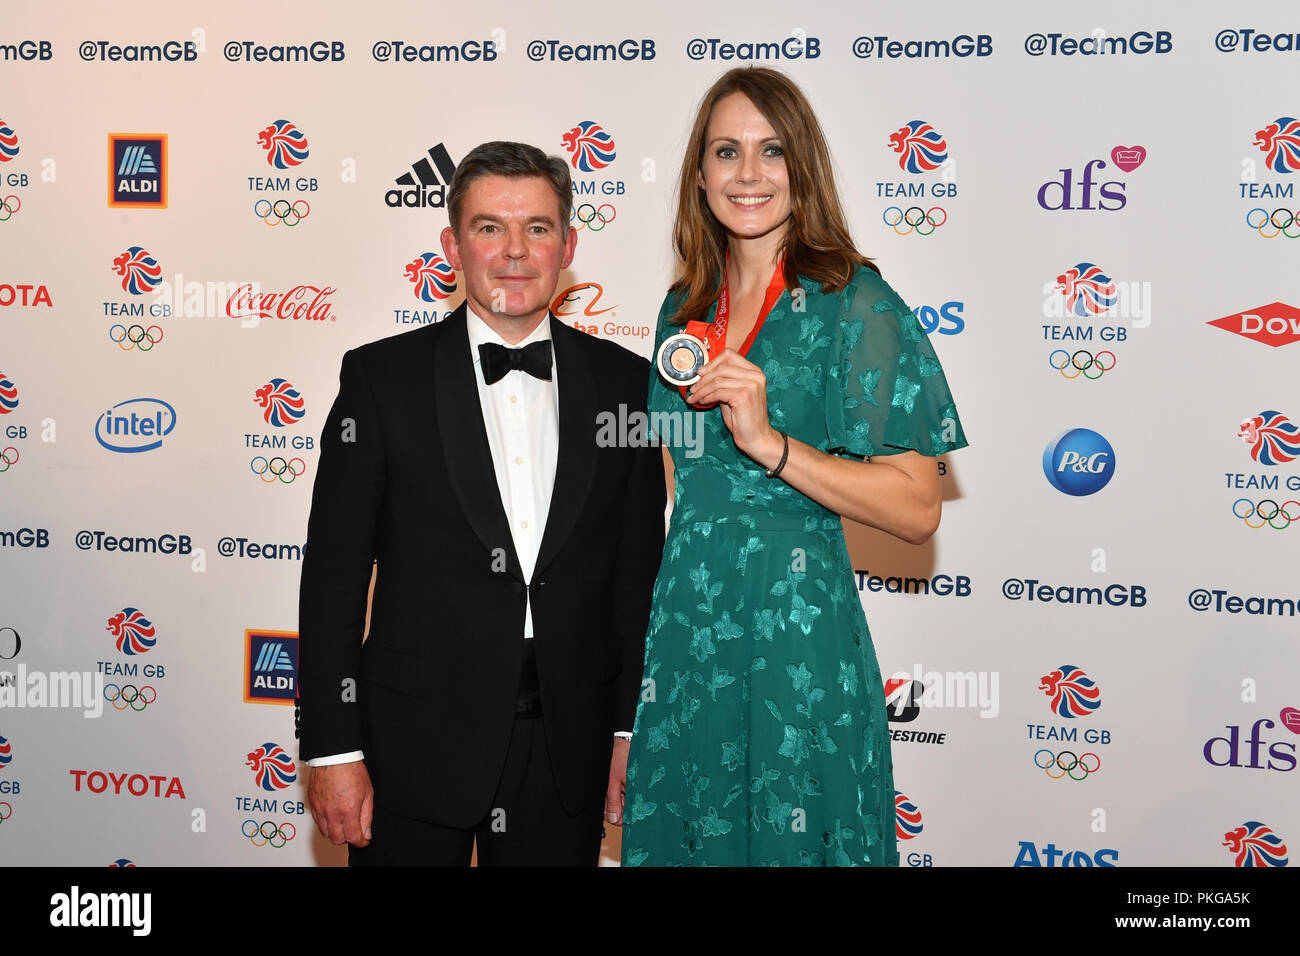 London, UK. 13th September 2018. Kelly Sotherton after being presented with her belated 2008 Beijing Heptathlon bronze medal by British Olympic Association chairman Sir Hugh Robertson, during the Team GB Ball 2018 at the Royal Horticultural Halls on Thursday, September 13, 2018, LONDON ENGLAND. Credit: Taka Wu/Alamy Live News - Stock Image